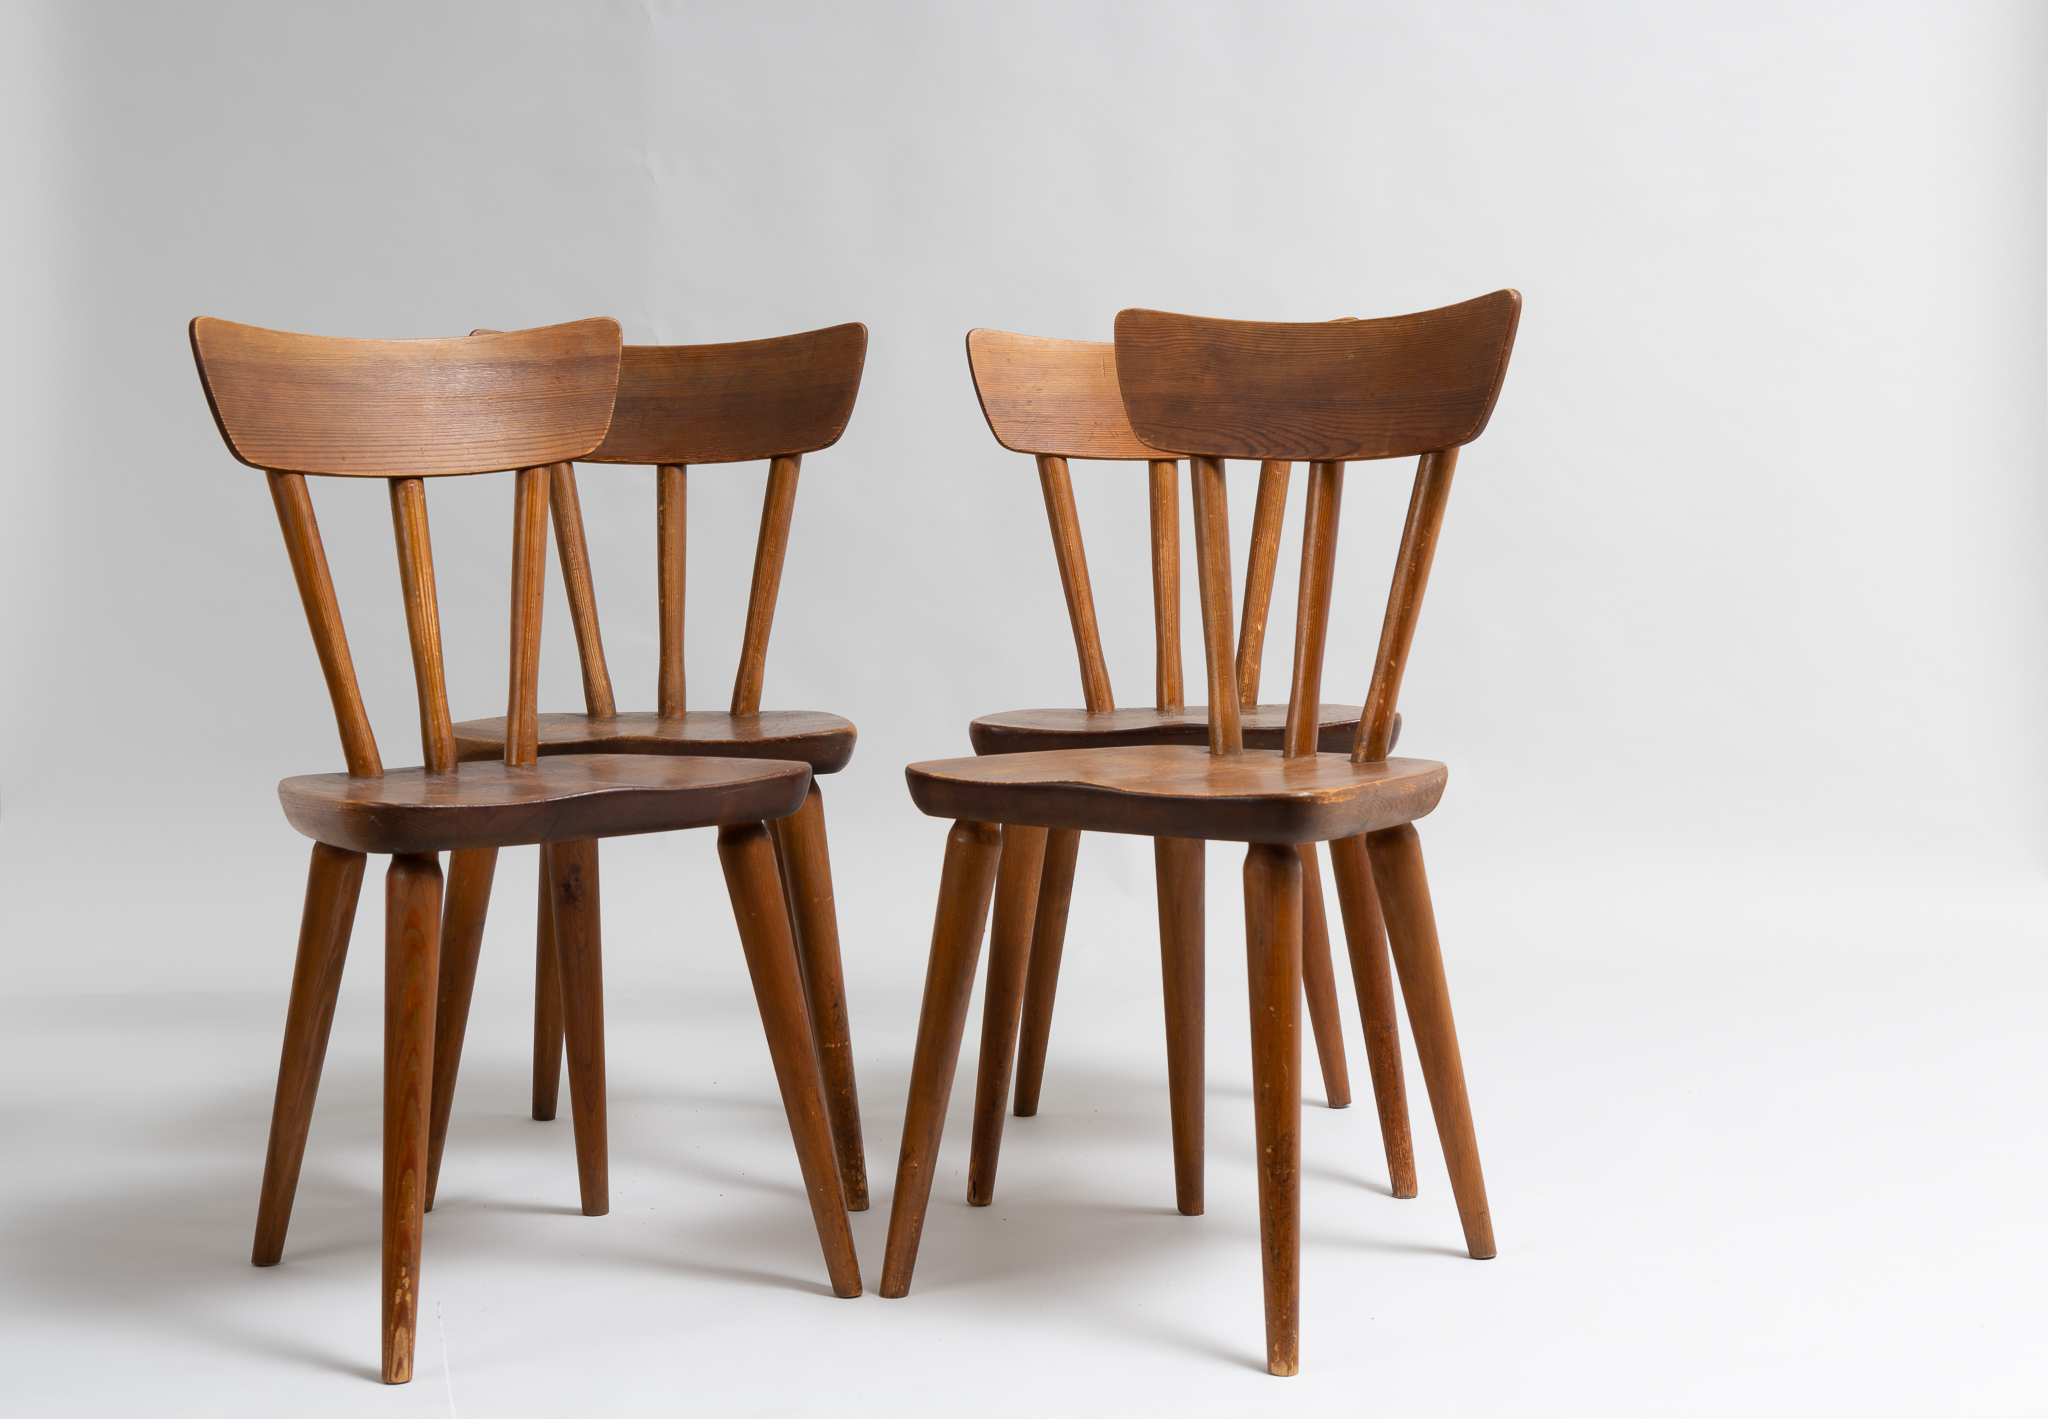 Göran Malmvall pine chairs for Svensk Fur from Sweden made around 1950. The chairs are a set of 4 and made in solid Swedish pine